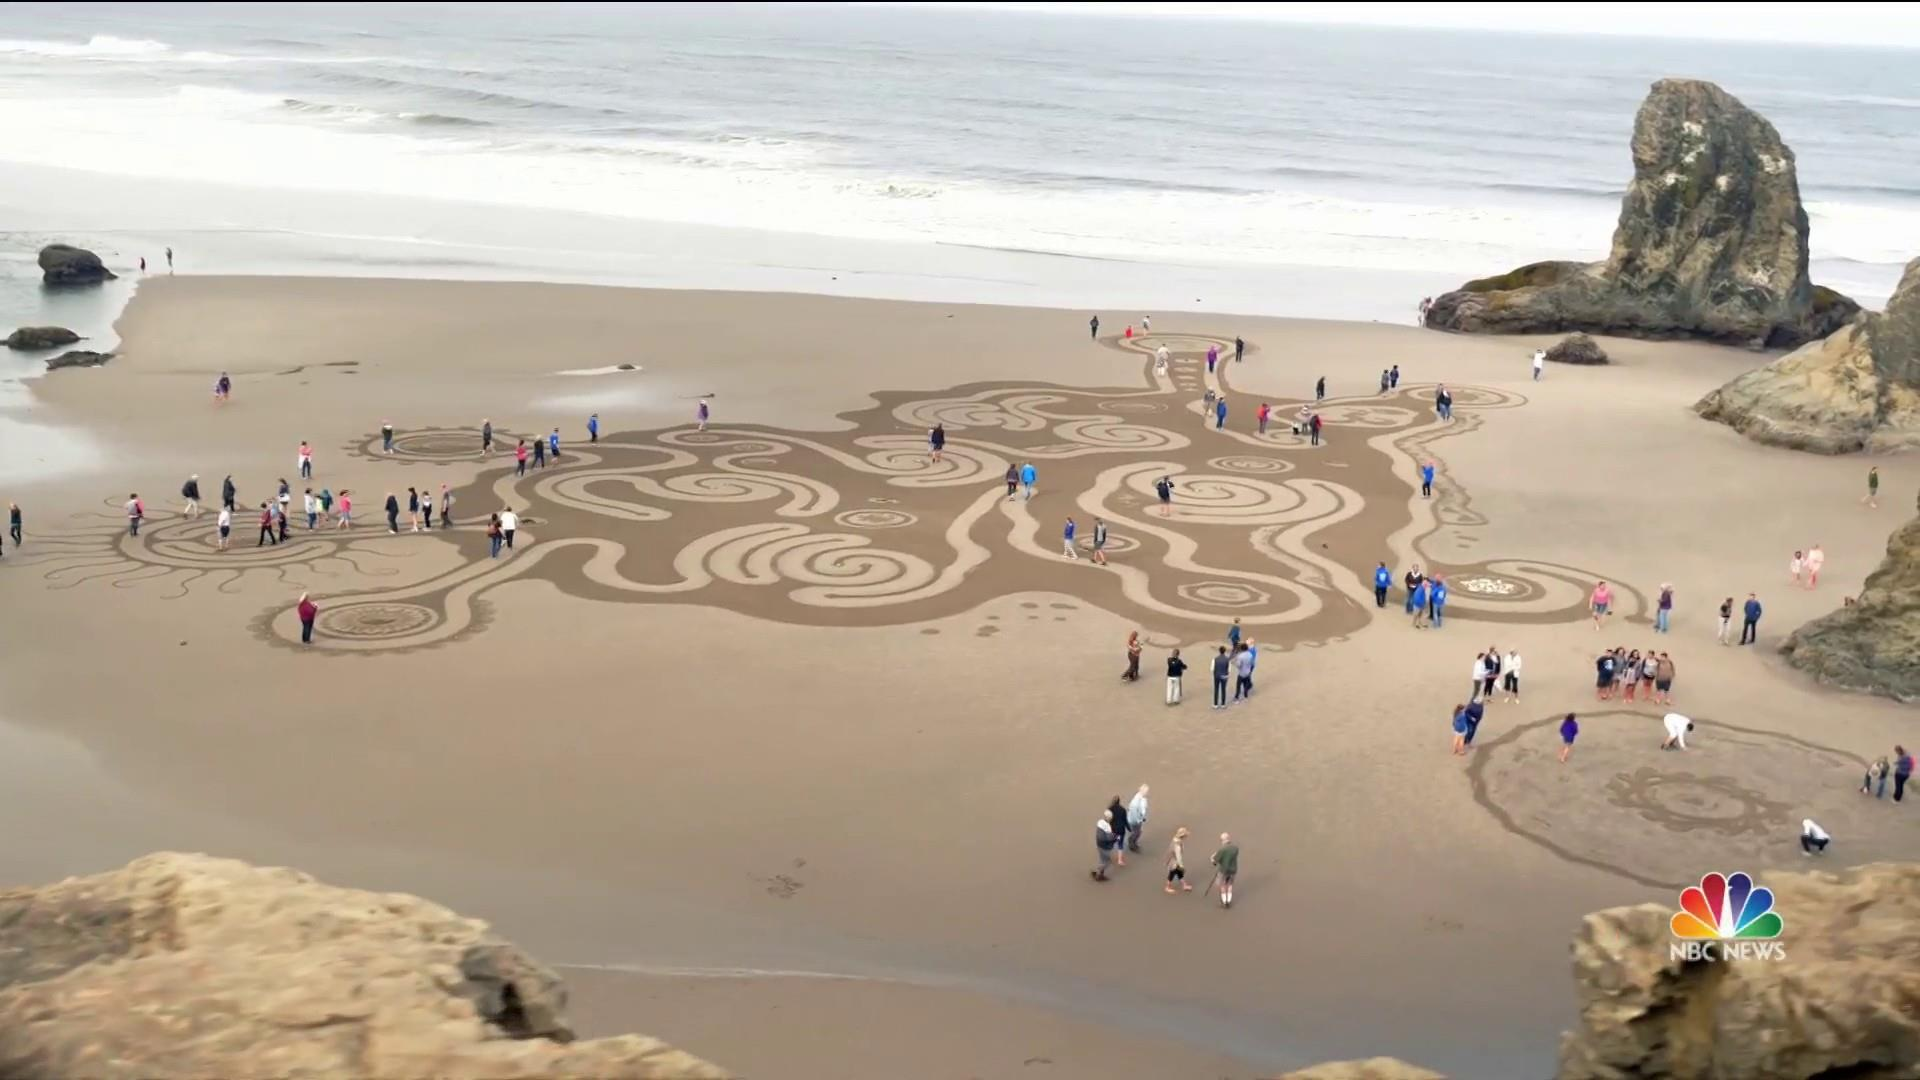 See the intricate labyrinths on Oregon's beaches before the tide washes them away